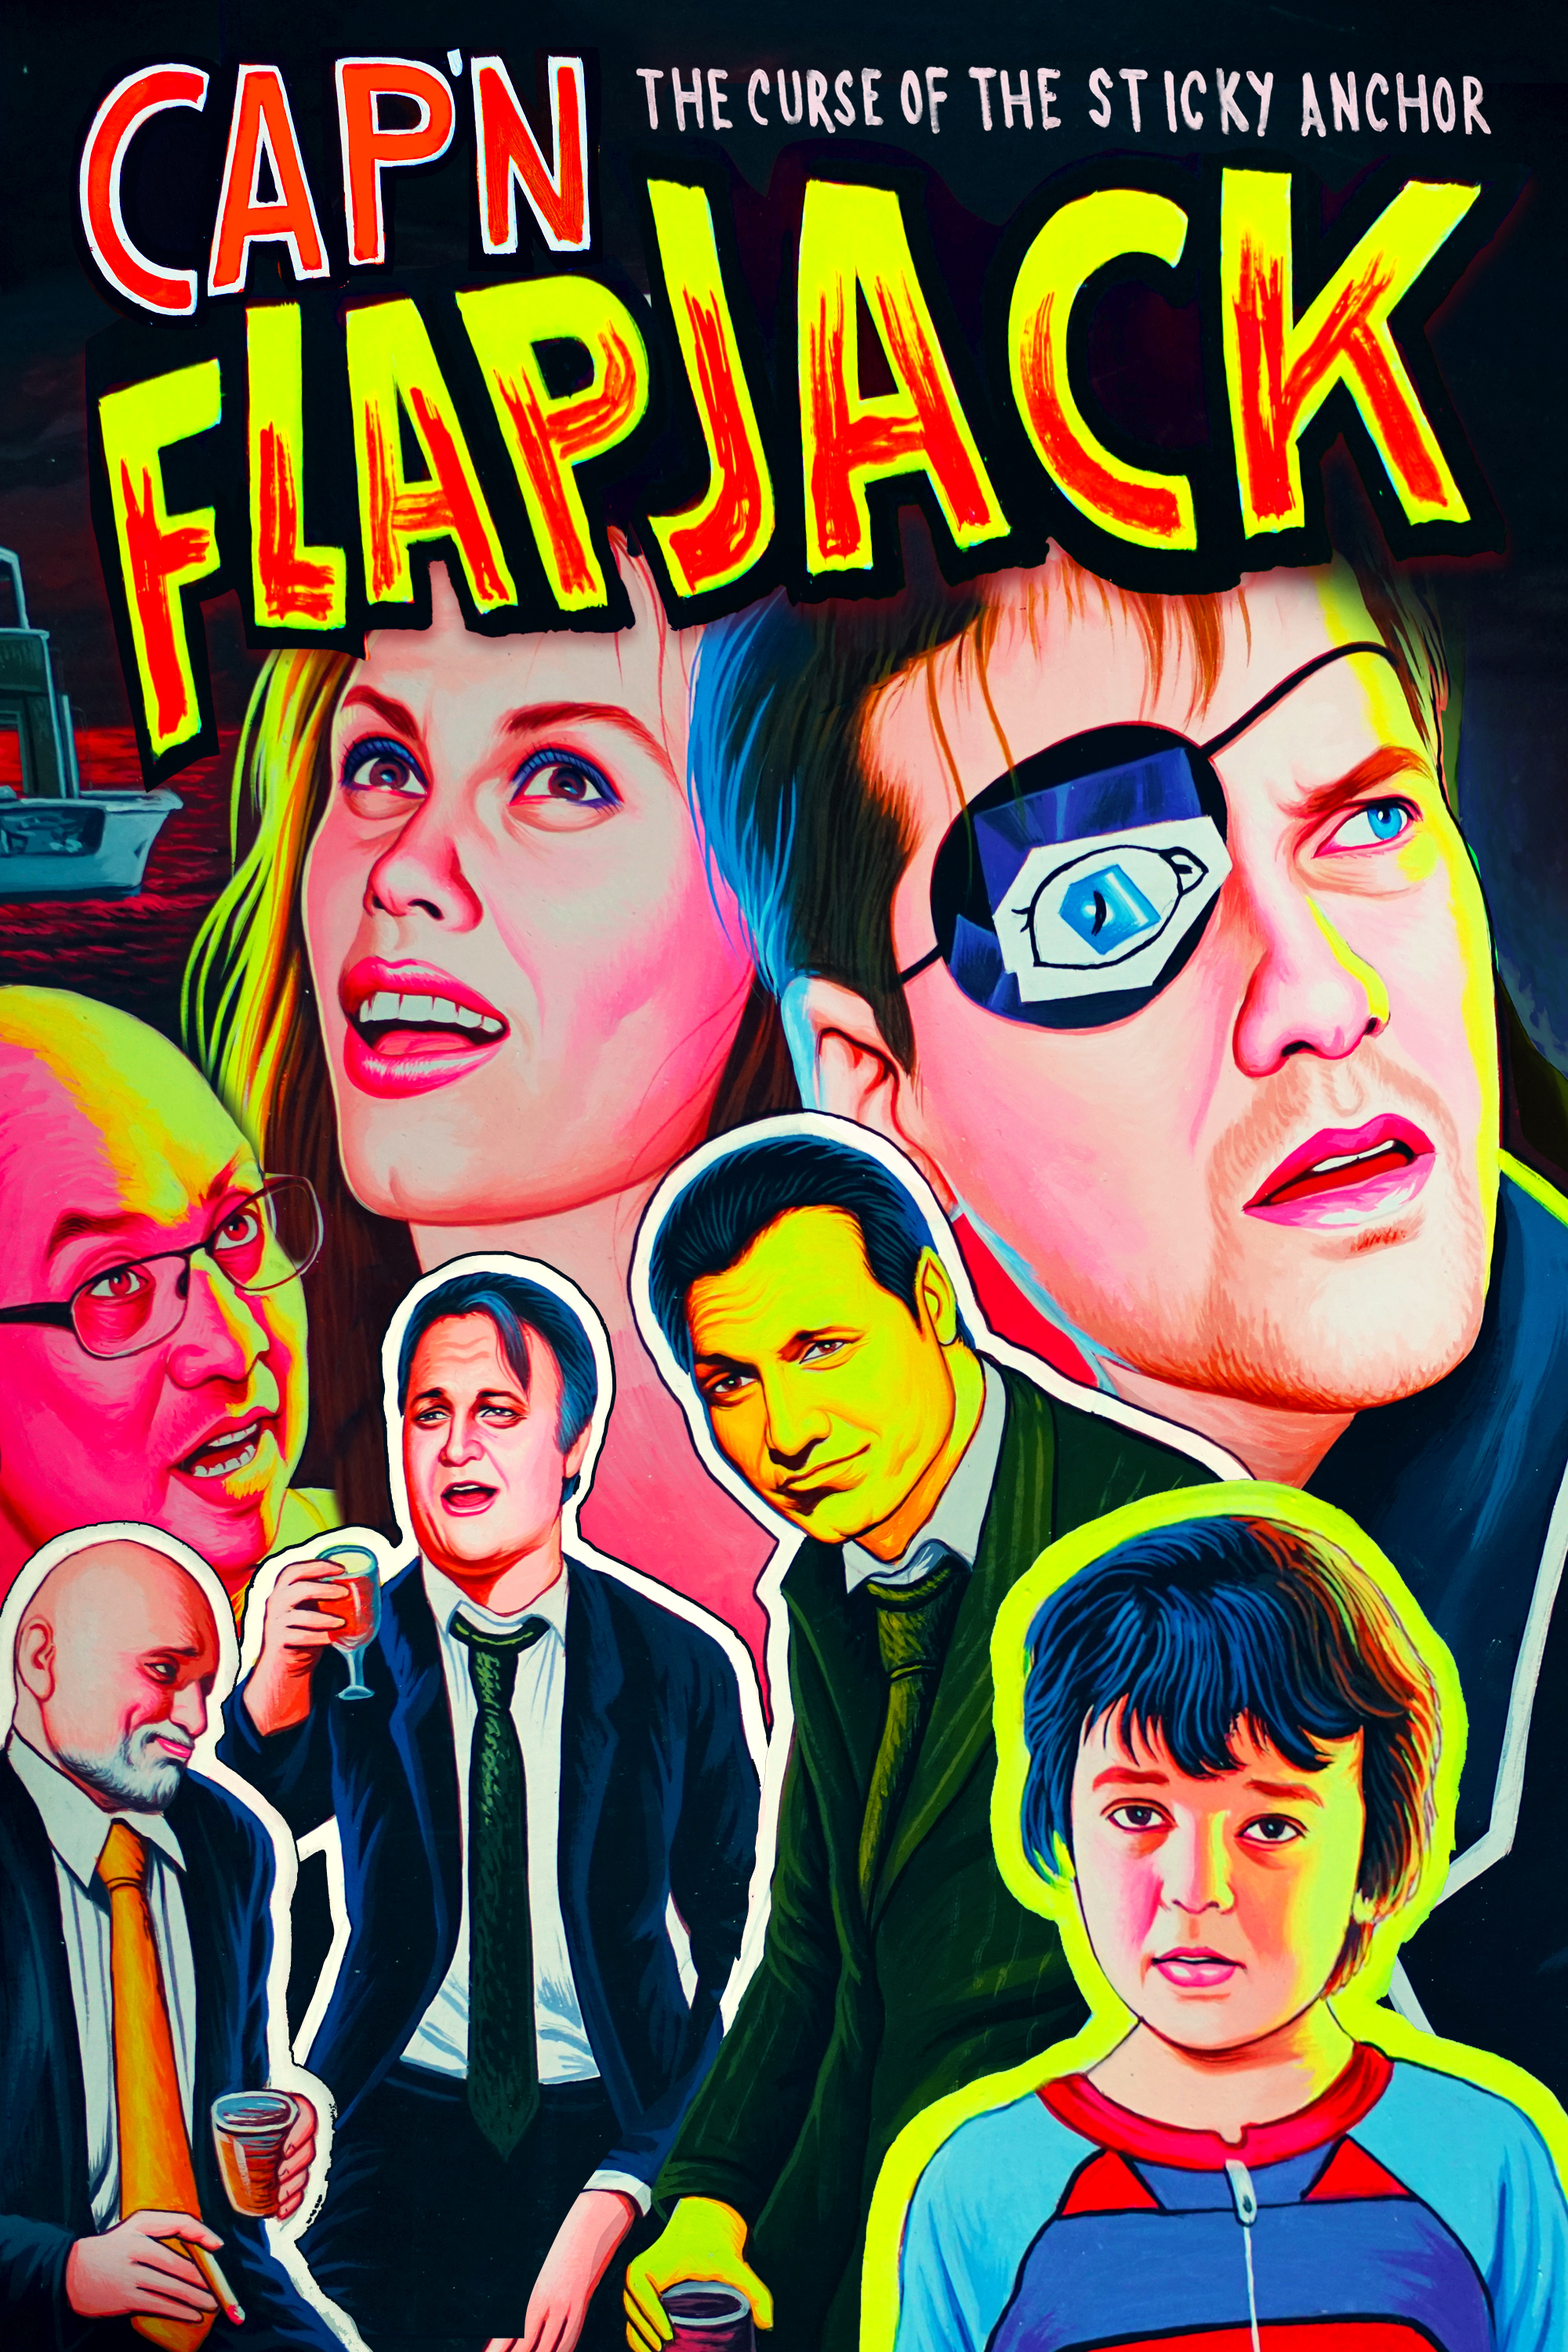 Cap N Flapjack The Curse Of The Sticky Anchor 2016 Imdb